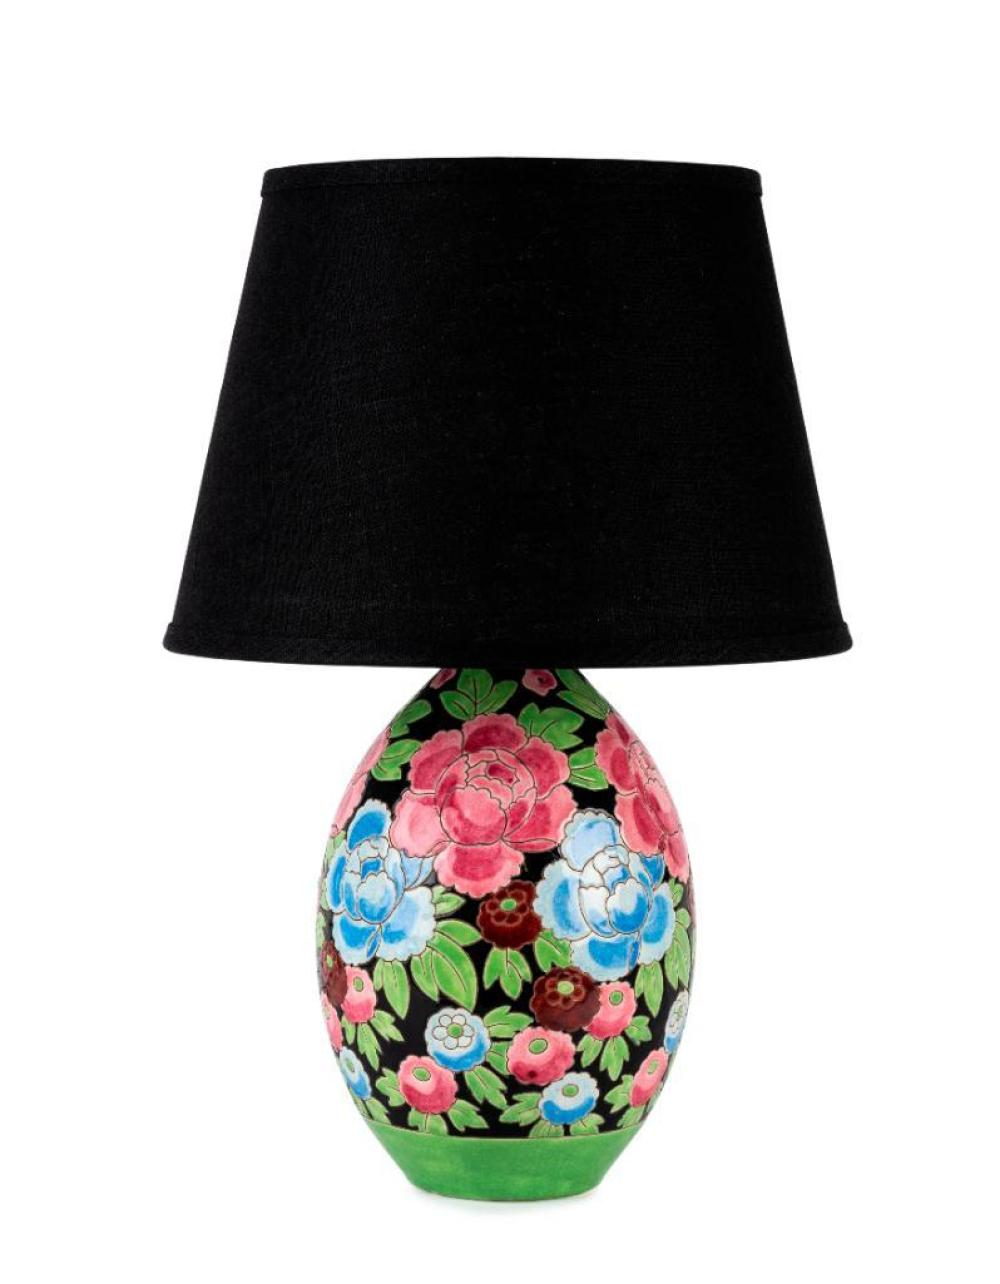 A very pretty faience floral ovoid vase lamp by Keramis, Belgian Circa 1930